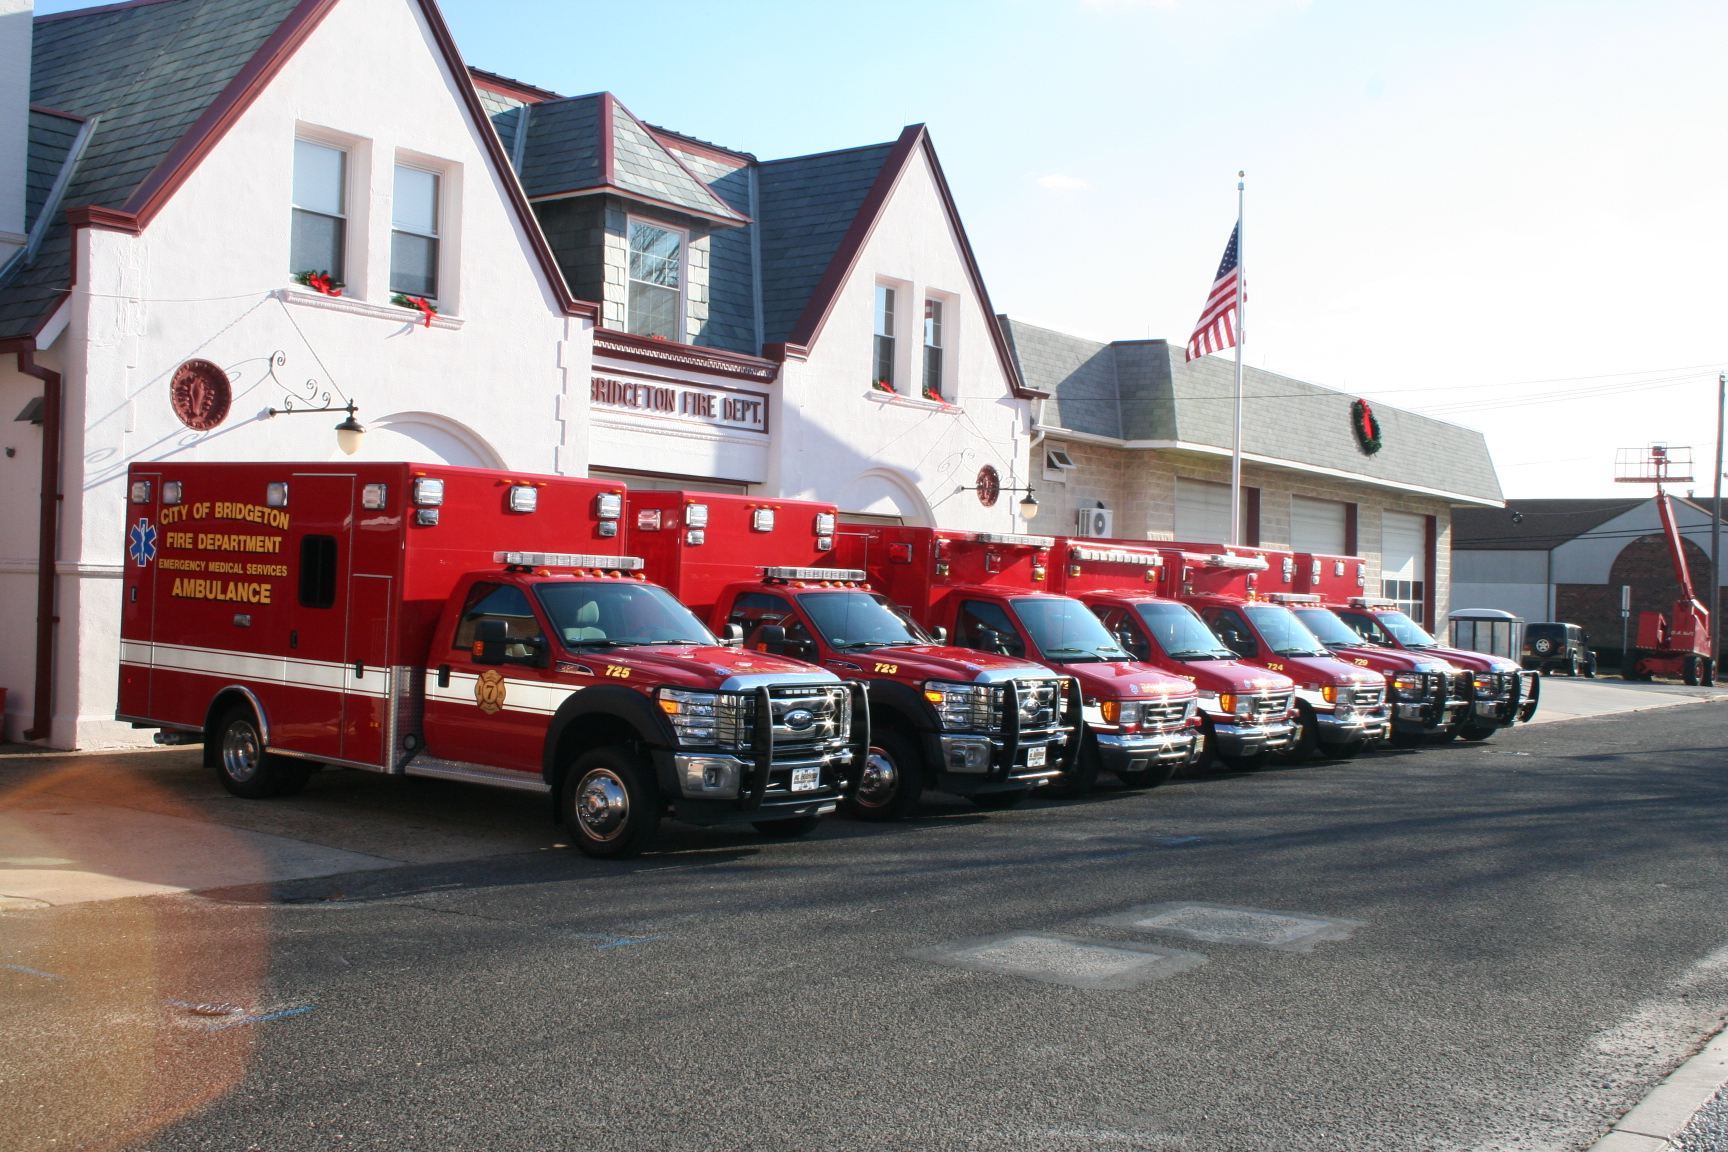 Emergency Medical Services — City of Bridgeton Fire Department